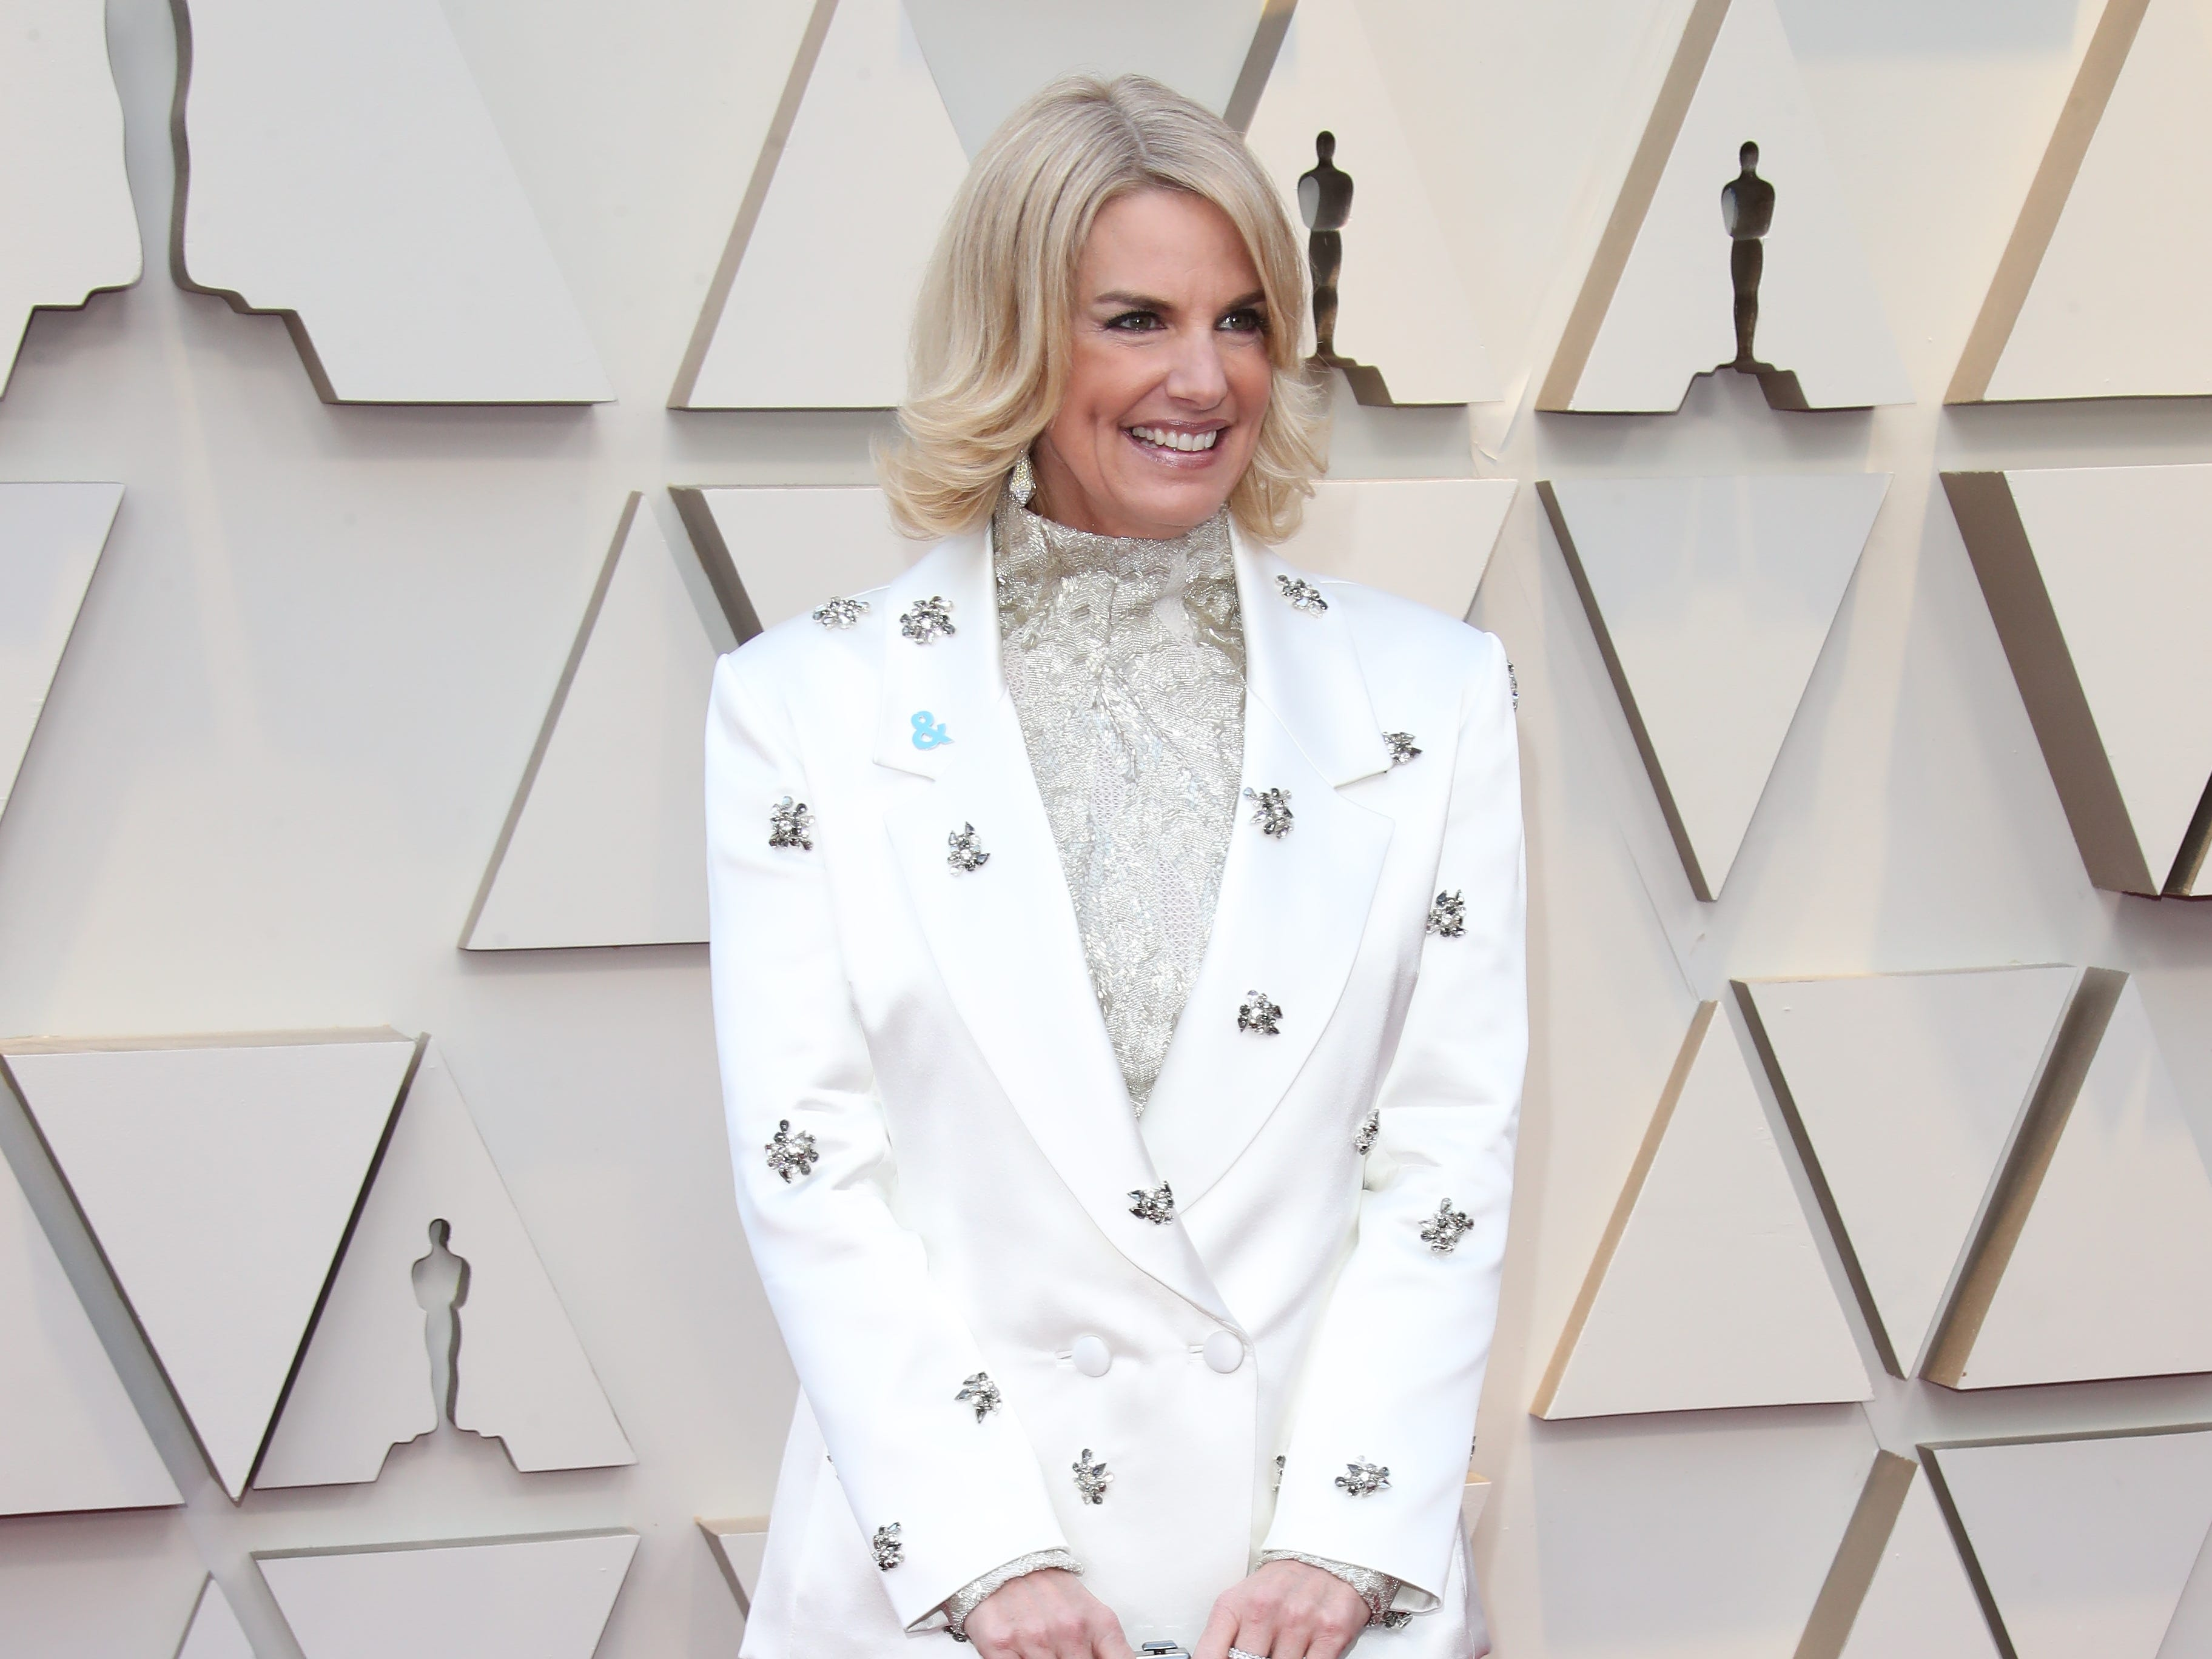 February 24, 2019; Los Angeles, CA, USA; Sarah Kate Ellis arrives at the 91st Academy Awards at the Dolby Theatre. Mandatory Credit: Dan MacMedan-USA TODAY NETWORK (Via OlyDrop)